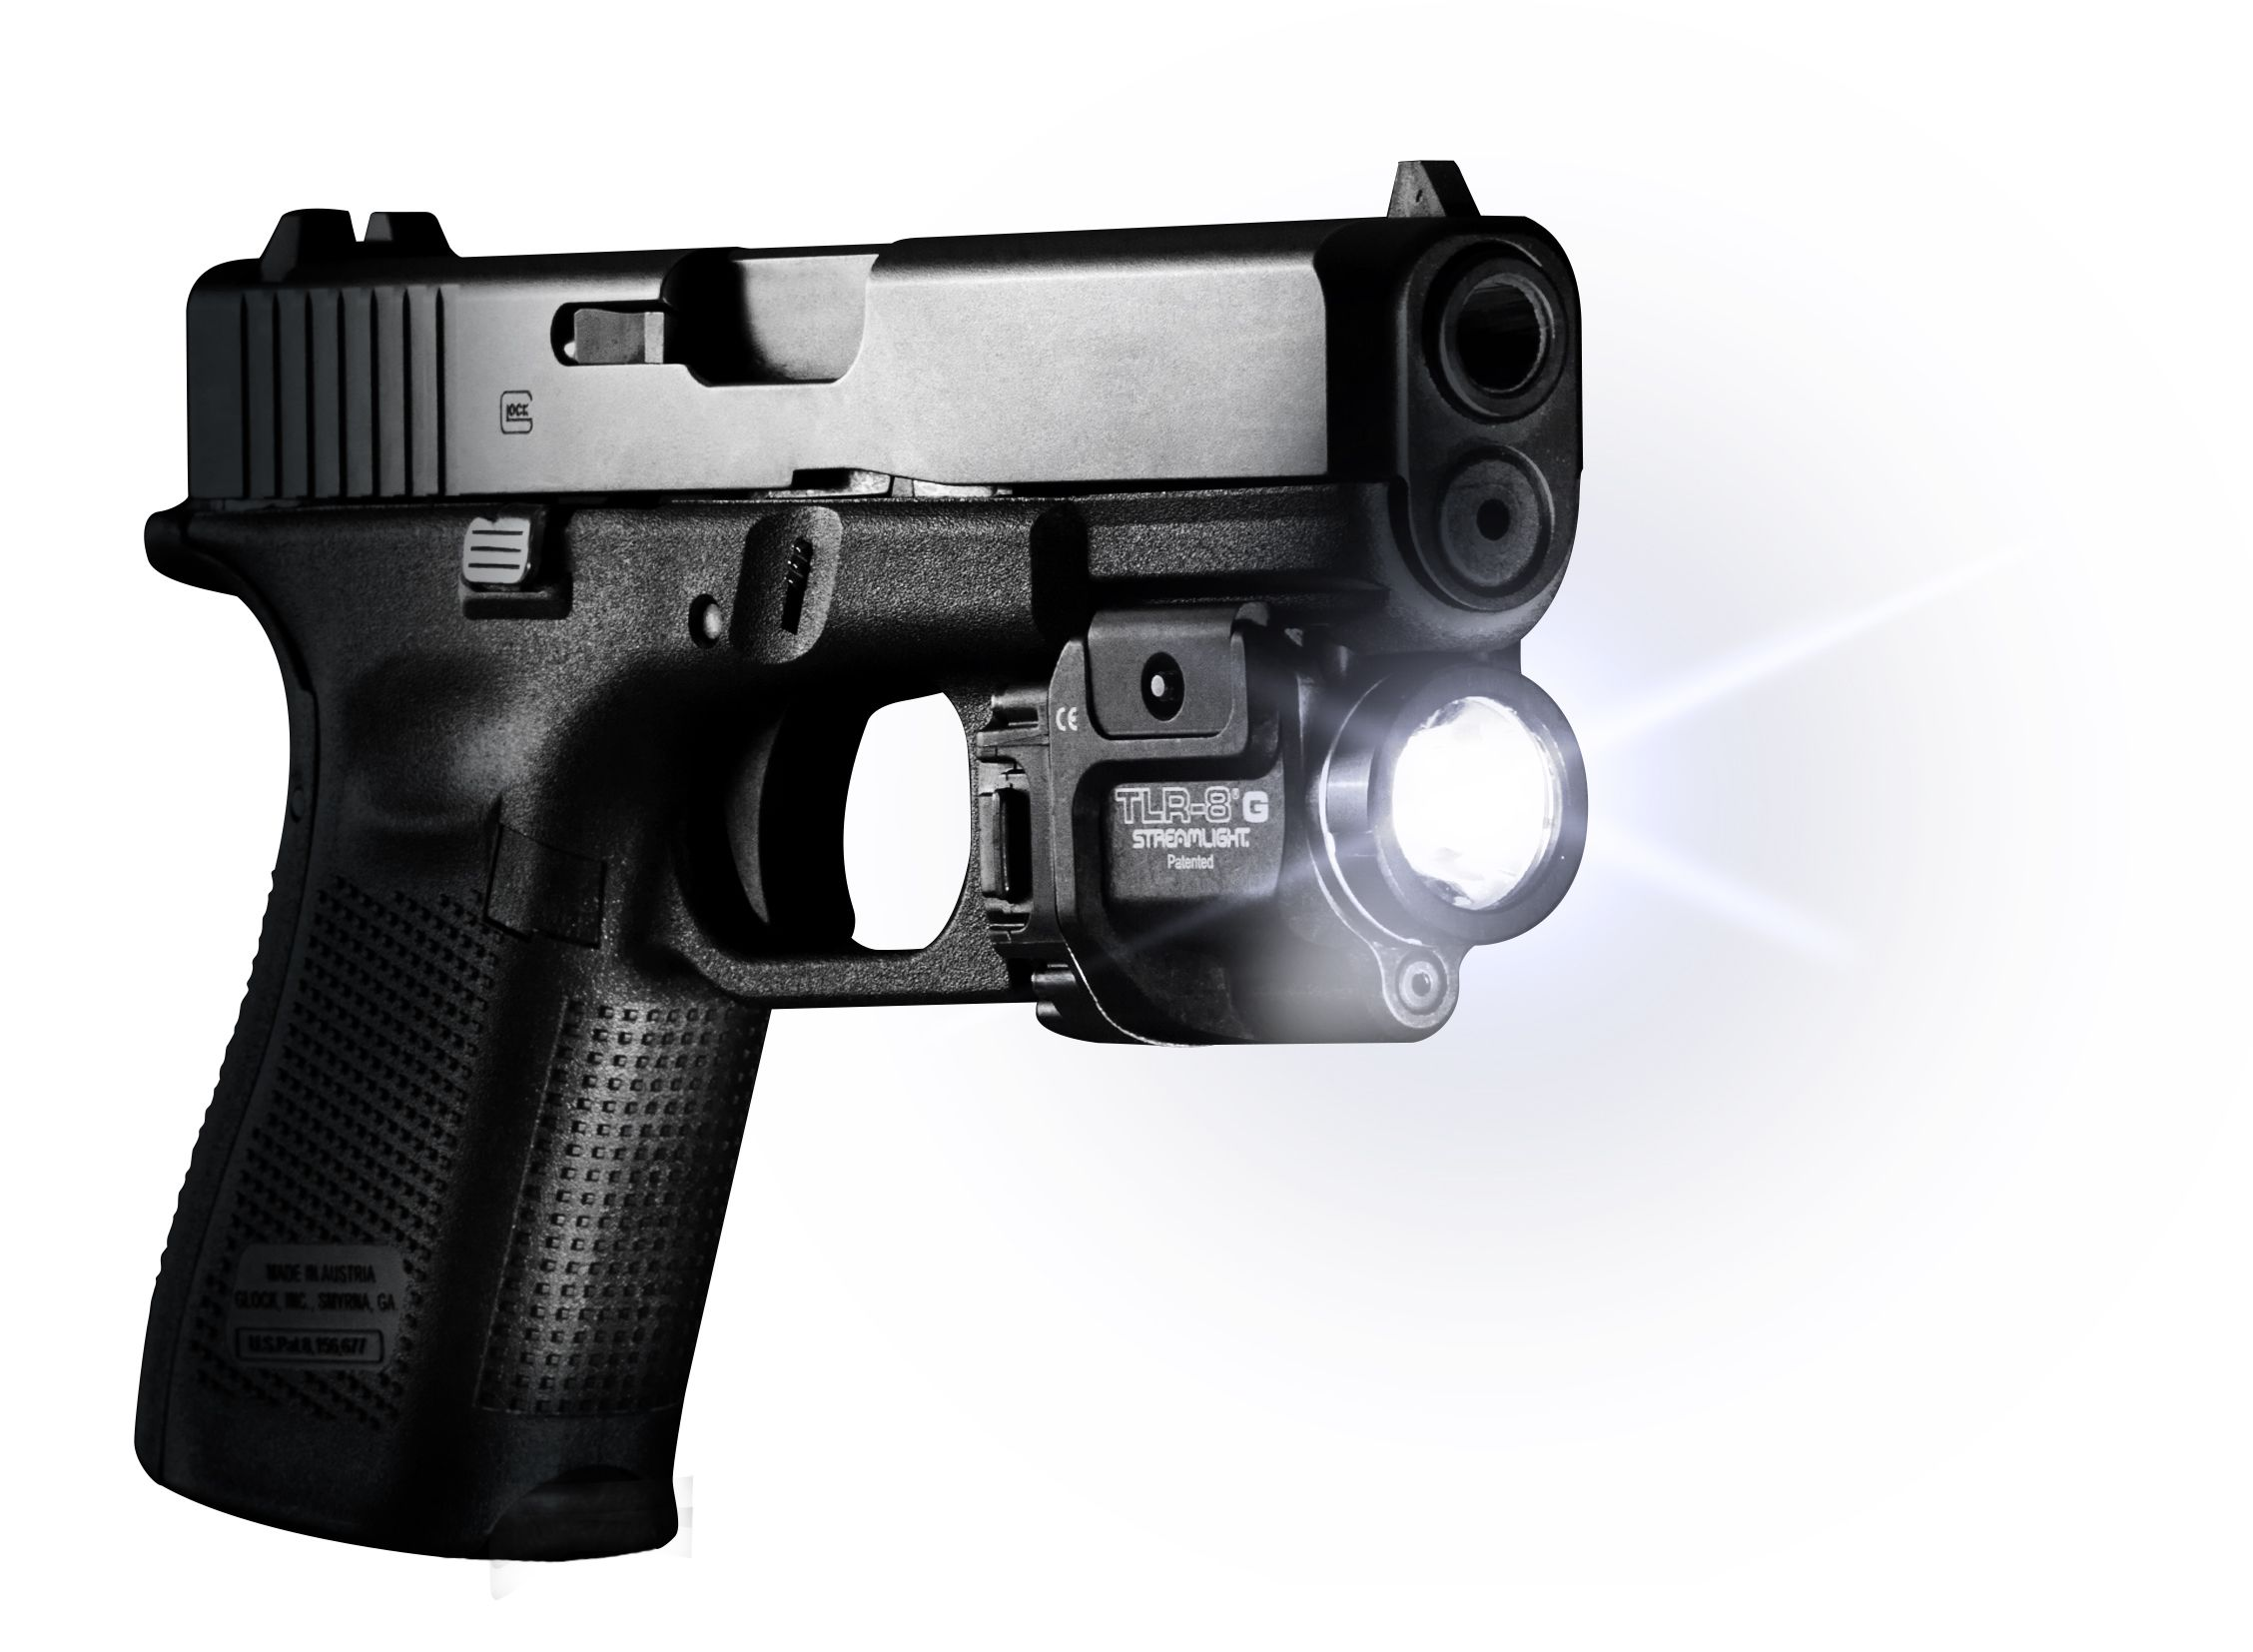 Streamlight TLR-8 G offers the ultimate in target engagement enhancement this rugged lithium battery powered LED weapon light with integrated green laser fits most hand guns and long guns. This light/laser combo features a fast rail clamp for rock solid repeatability on a wide variety of weapons. 500 lumens output delivers a powerful beam with extensive range, good peripheral coverage and selectable strobe mode. The daylight visible green targeting laser uses the latest direct drive diode that burns brightly in extreme temperatures. The TLR-8® G runs for 1.5 hours continuously with both light and laser in operation.